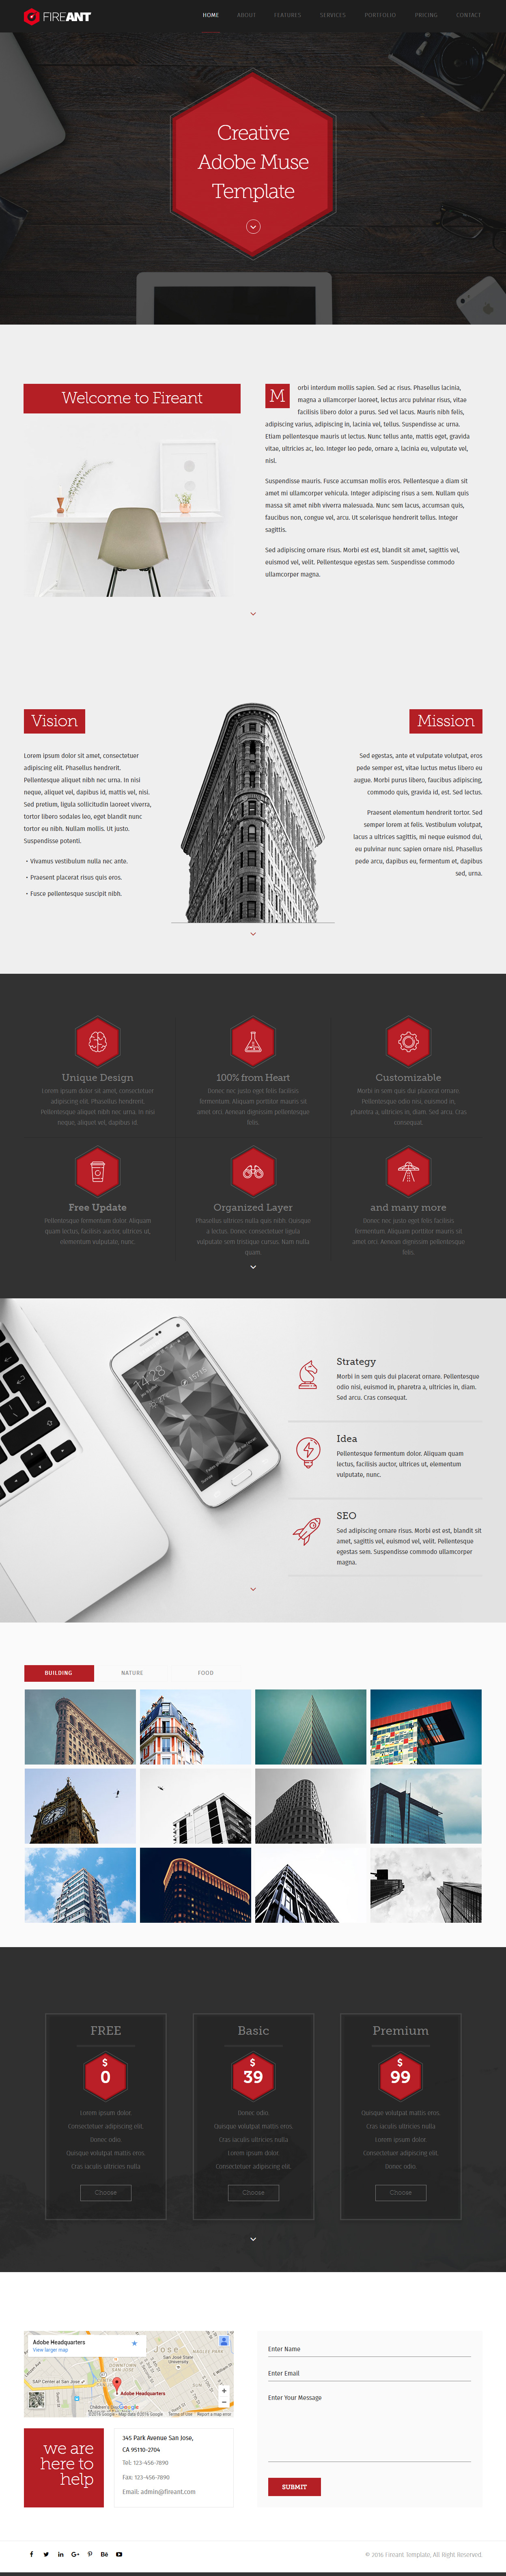 15 best one page muse templates 2017 responsive miracle for Adobe muse mobile templates